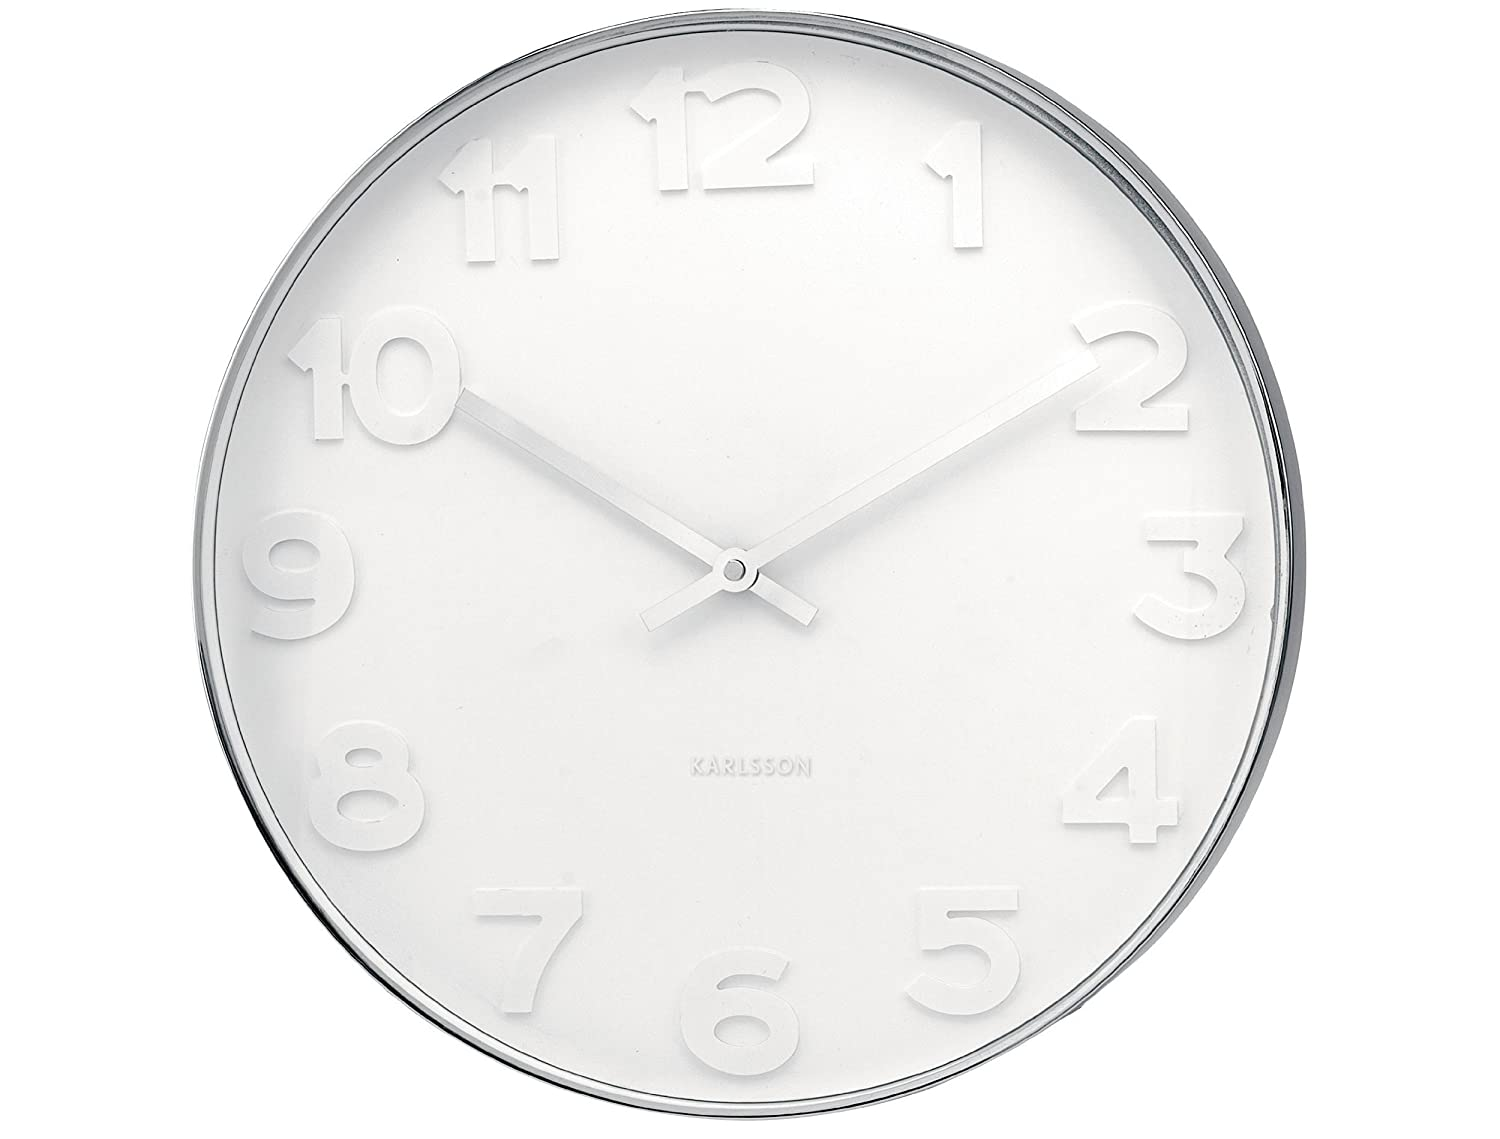 karlsson mr white numbers wall clock white amazoncouk  - karlsson mr white numbers wall clock white amazoncouk kitchen  home